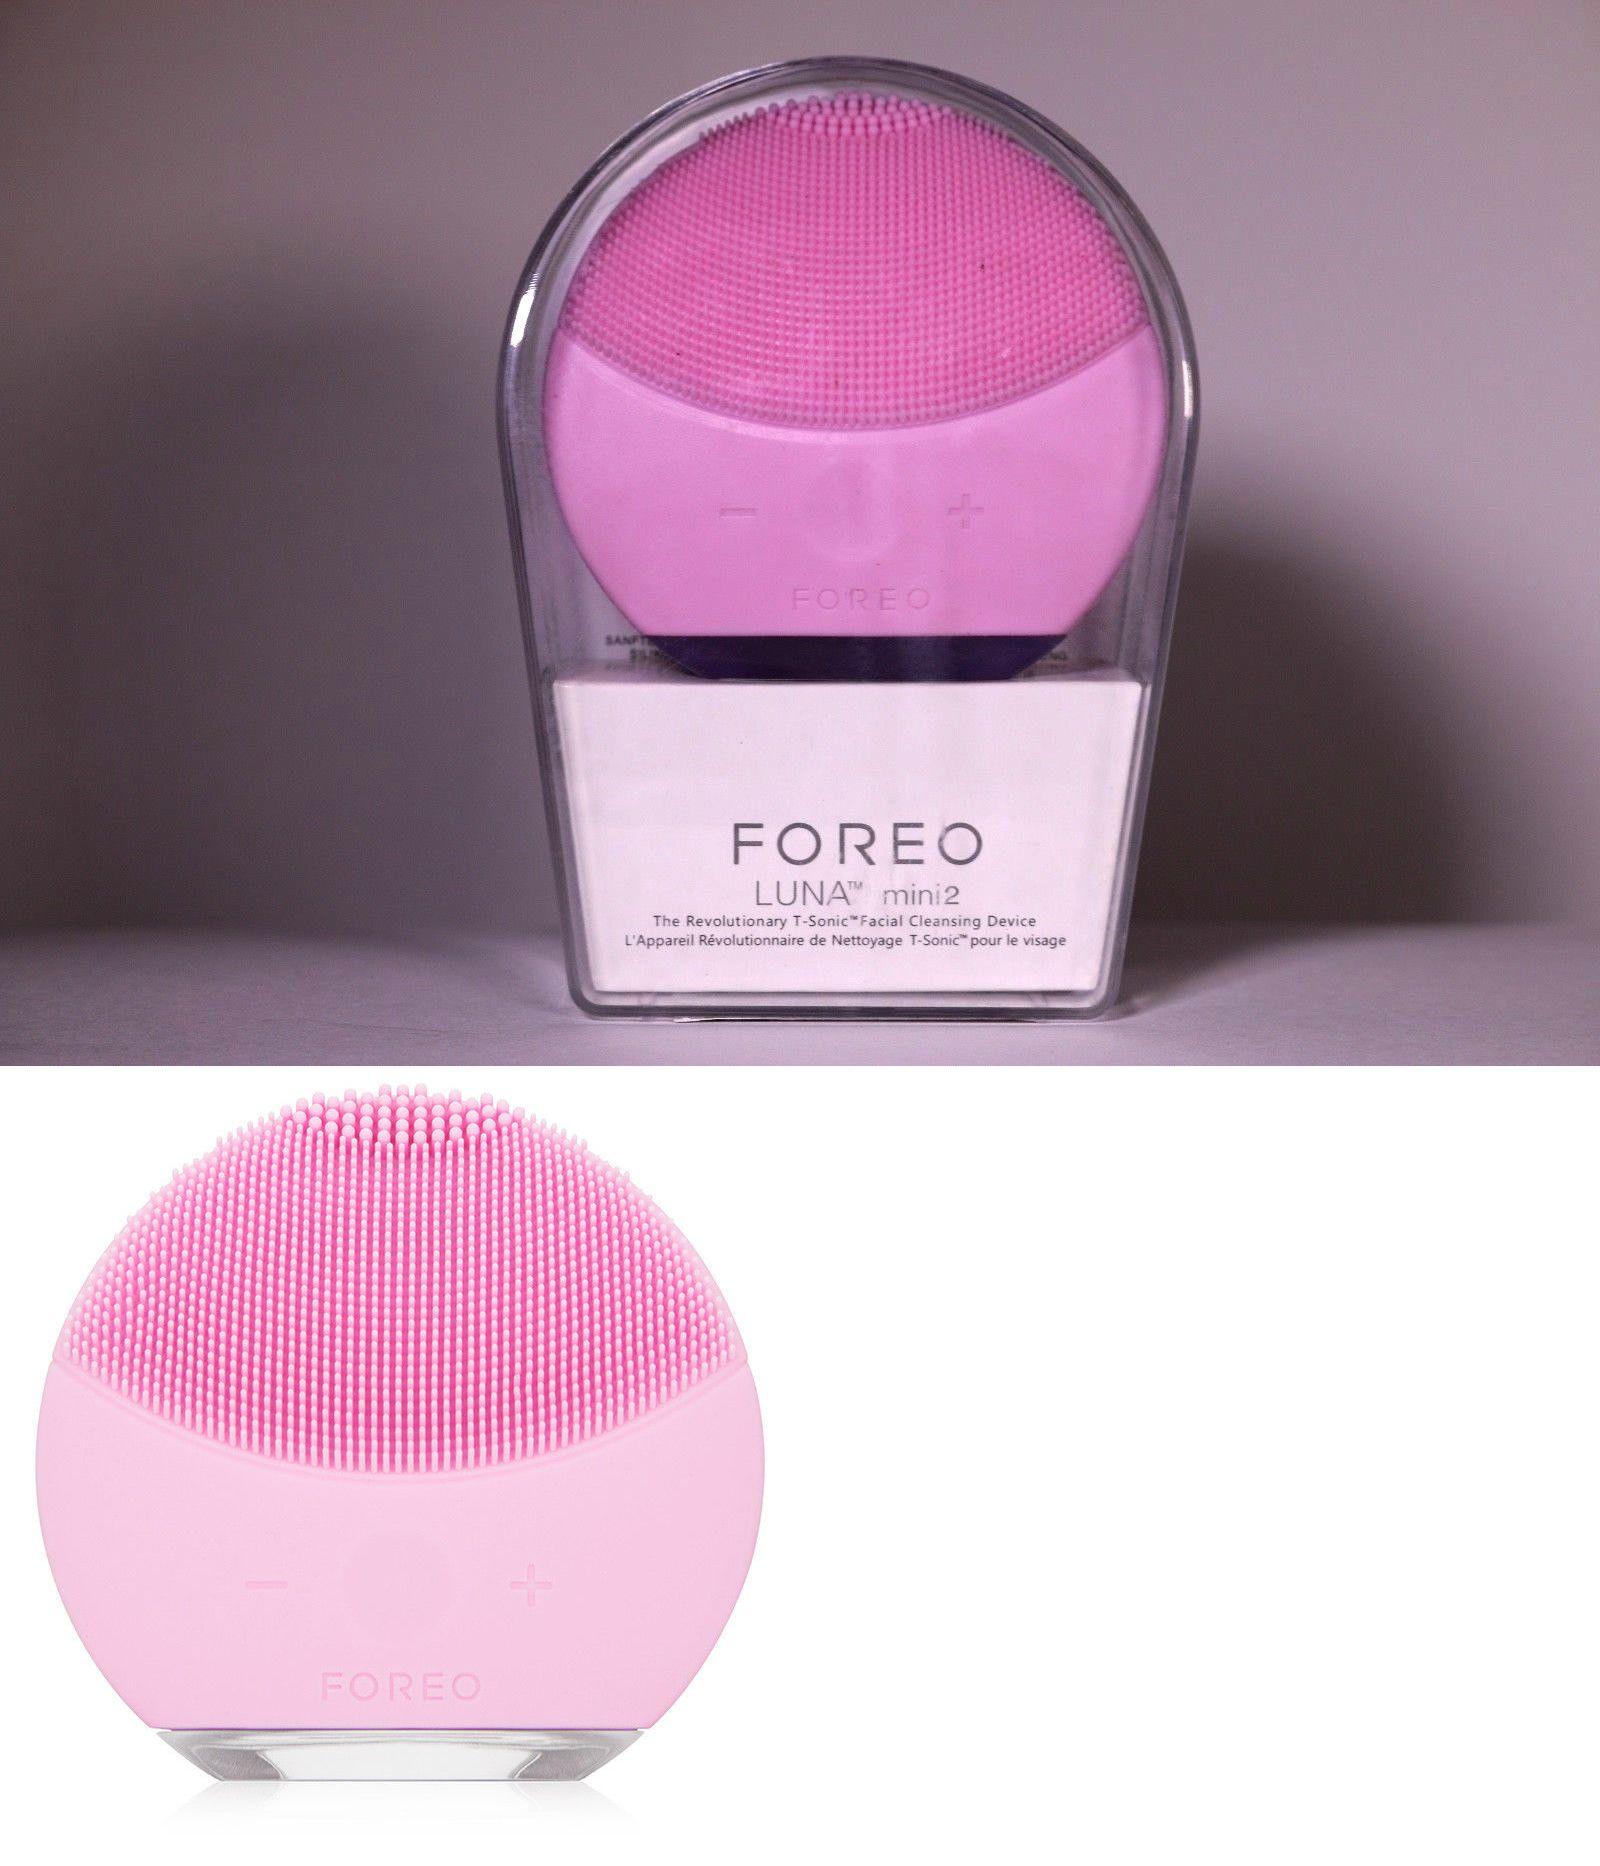 Foreo Luna Mini 2 T Sonic Facial Cleansing Device Pink Home Skin Care Devices 177767 Buy It Now Only 2499 On Ebay